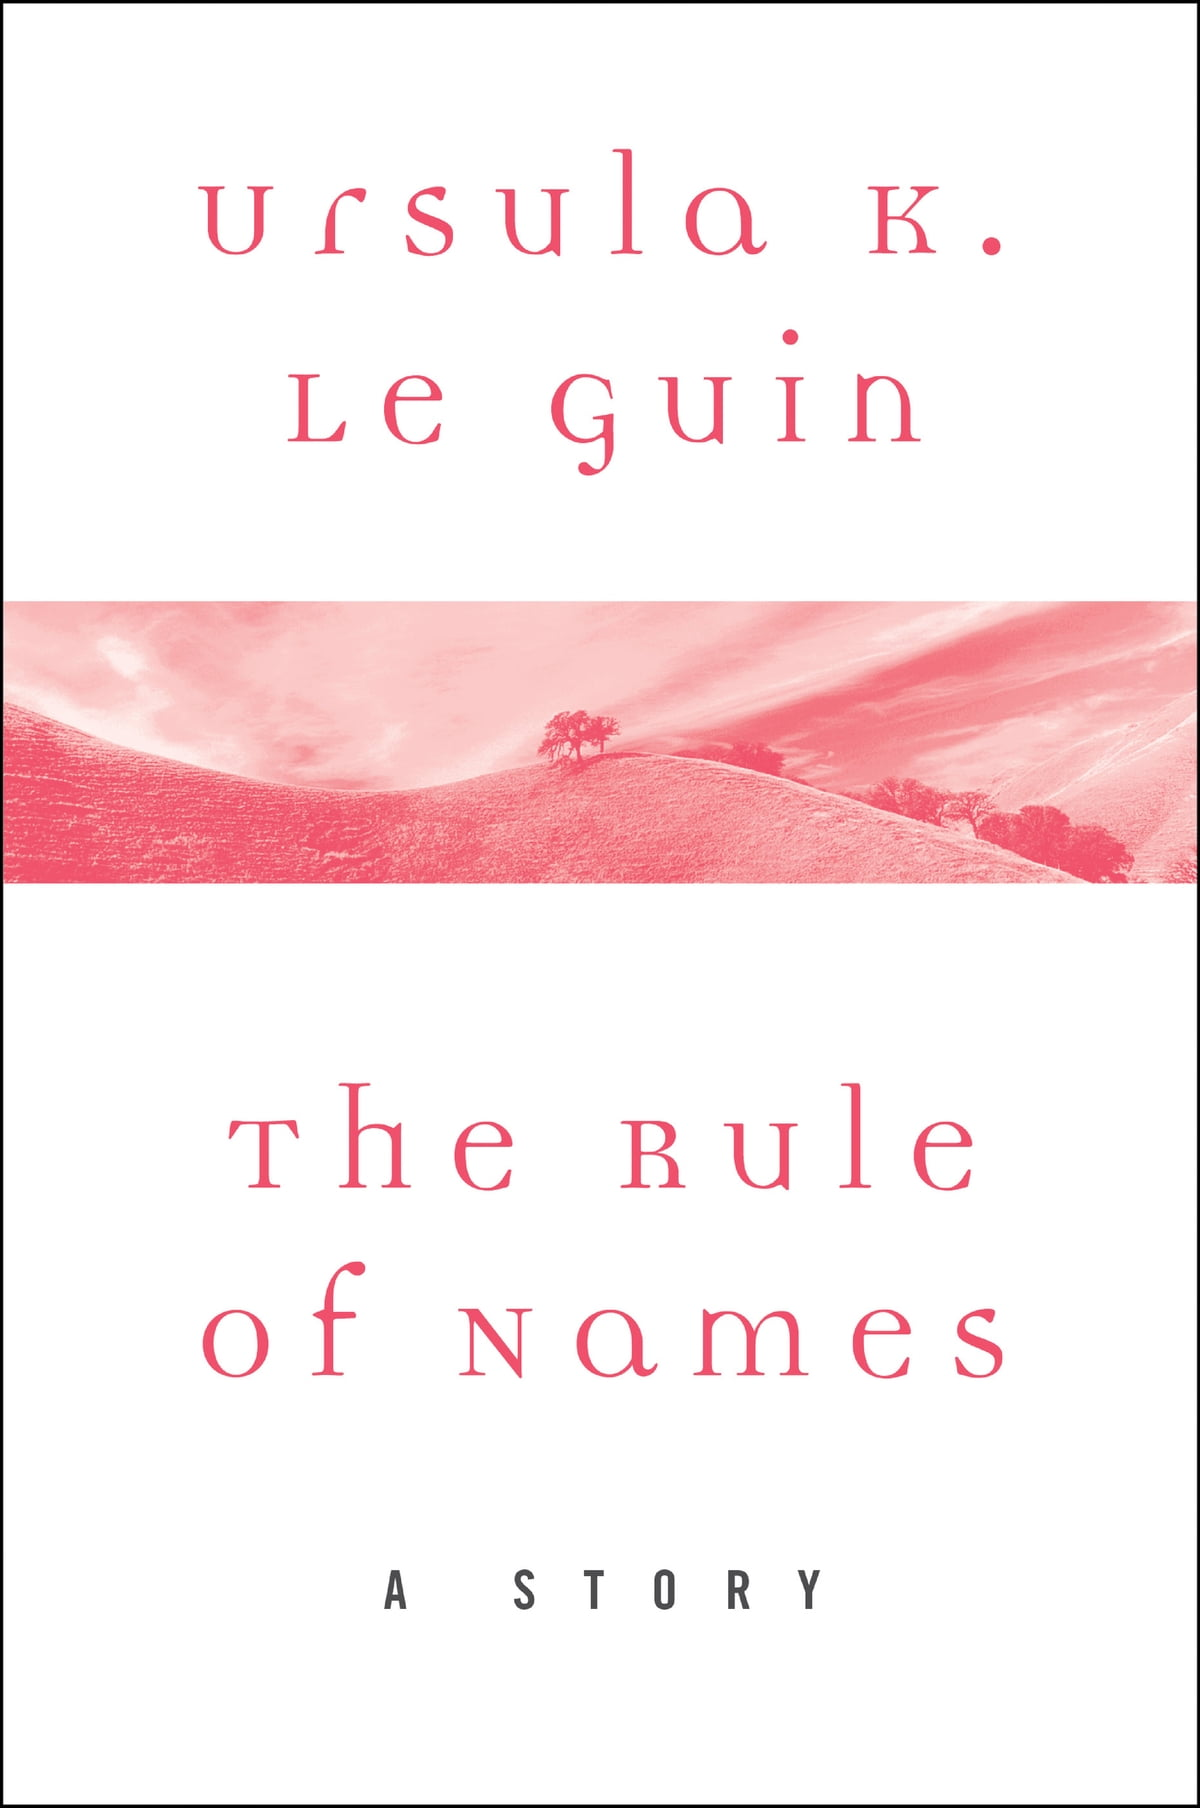 The rule of names ebook by ursula k le guin 9780062470904 the rule of names ebook by ursula k le guin 9780062470904 rakuten kobo fandeluxe Ebook collections